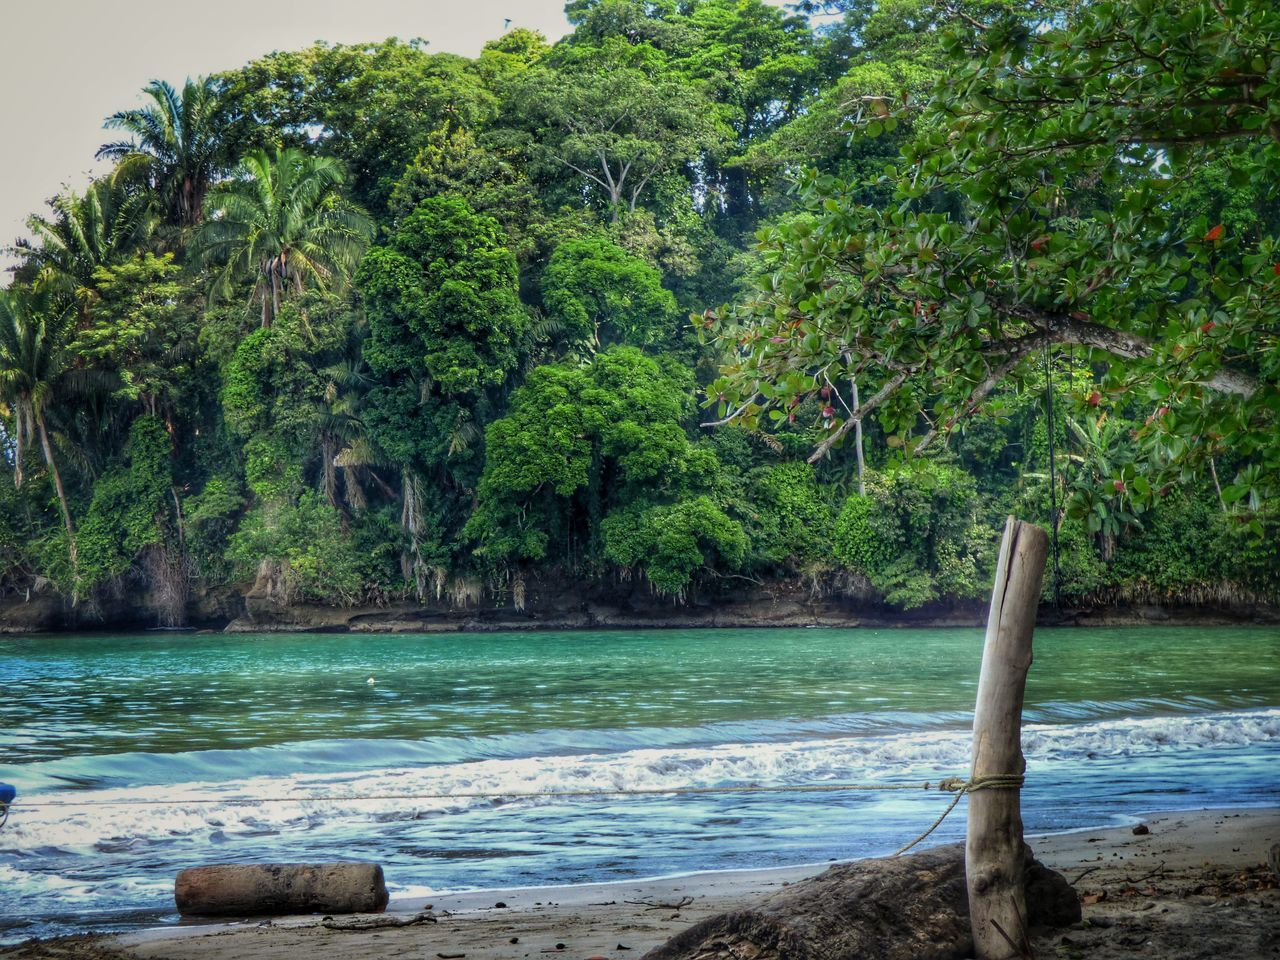 tree, nature, water, beauty in nature, outdoors, scenics, sea, forest, no people, tranquility, growth, beach, day, tree trunk, branch